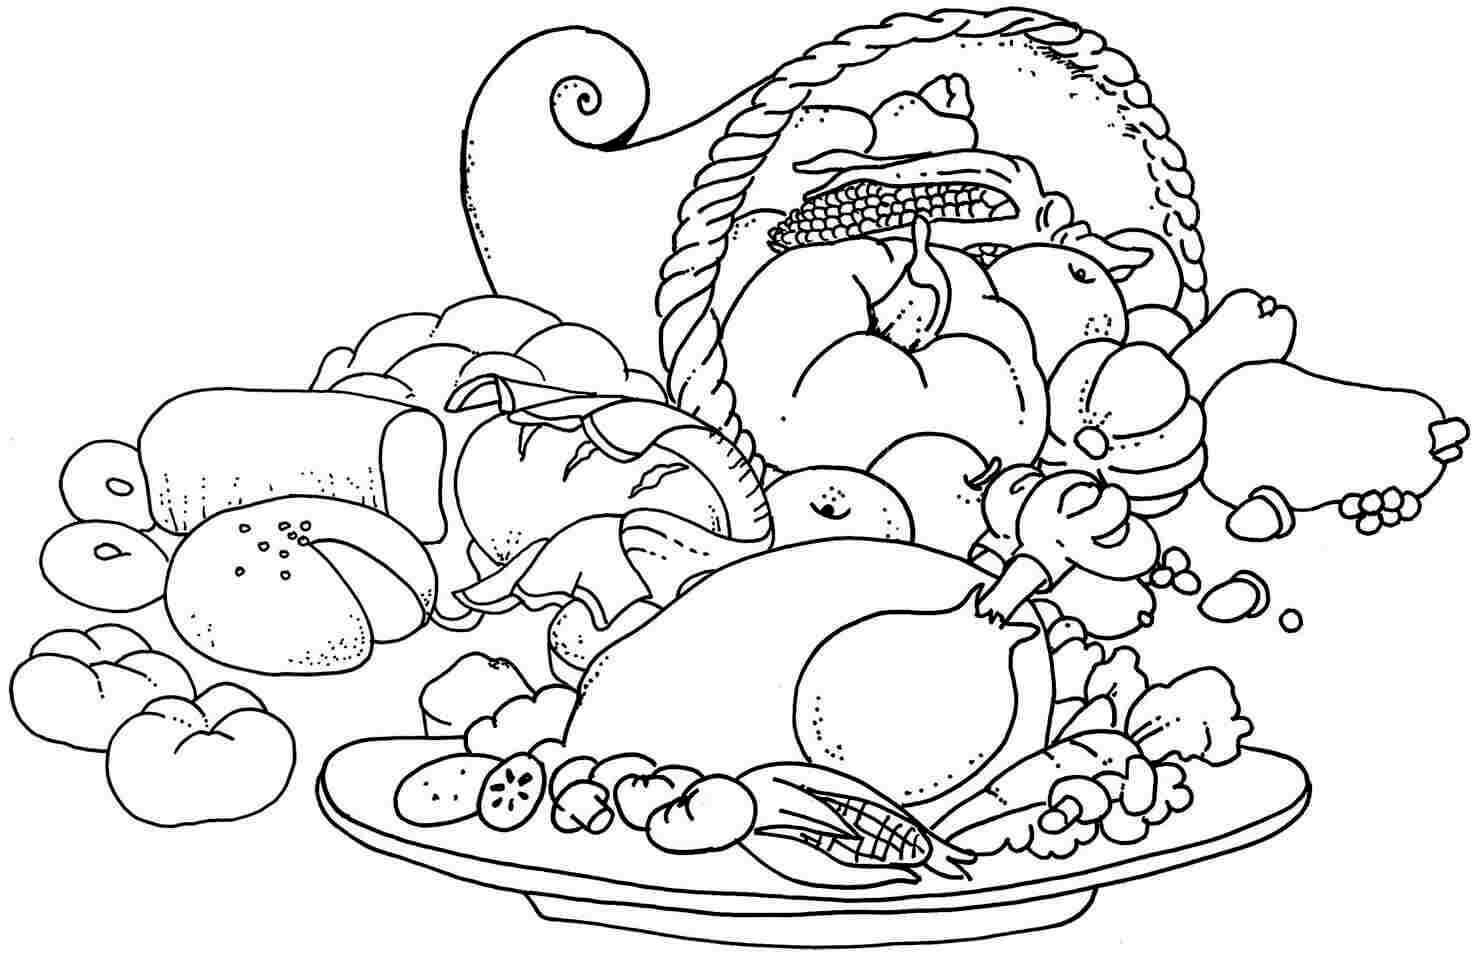 coloring pages food canned food coloring pages at getdrawings free download pages food coloring